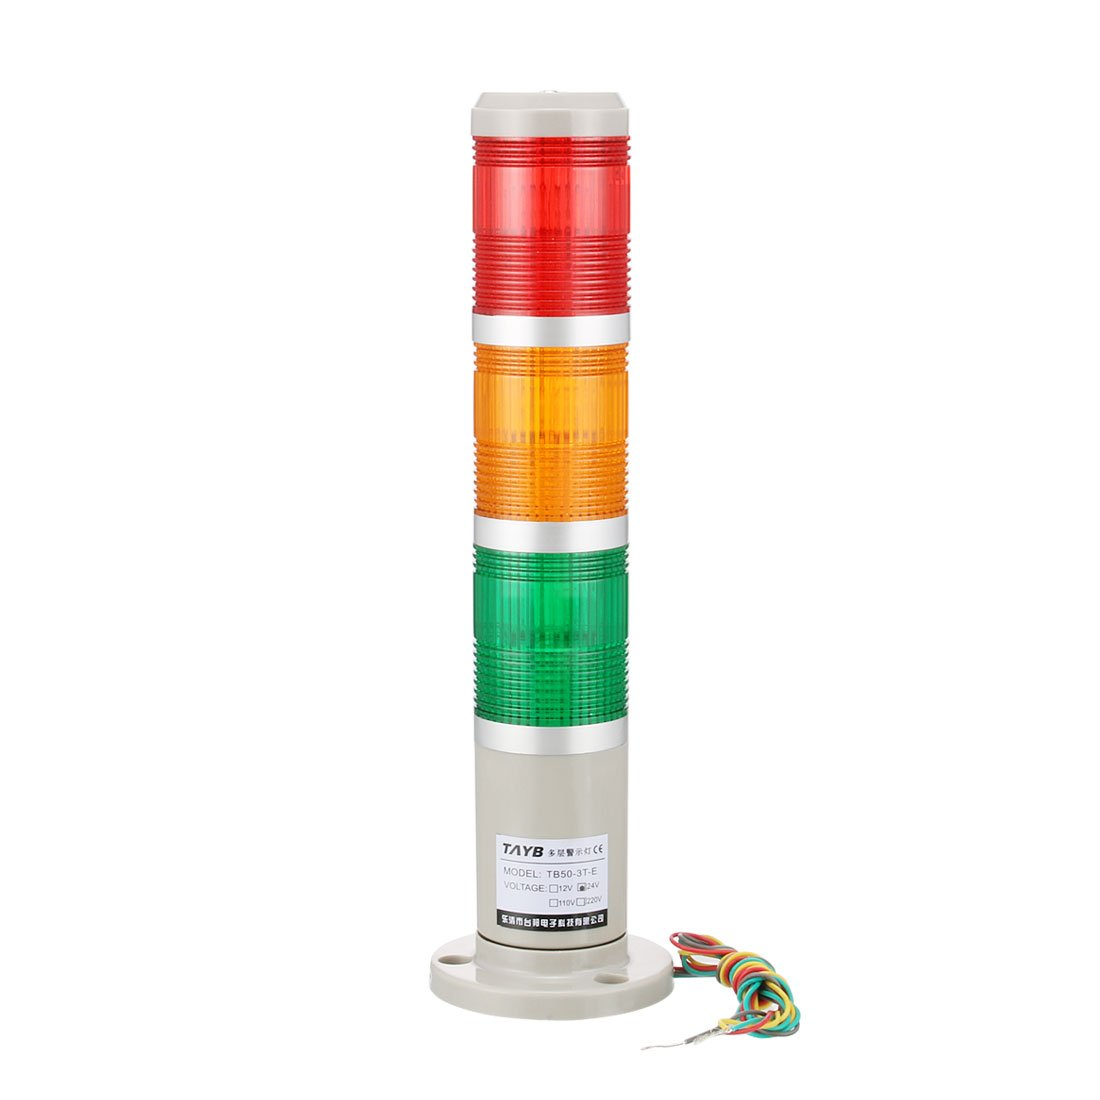 uxcell Warning Light Bulb Bright Industrial Signal Alarm Lamp DC24V Red Green Yellow TB50-3T-E by uxcell